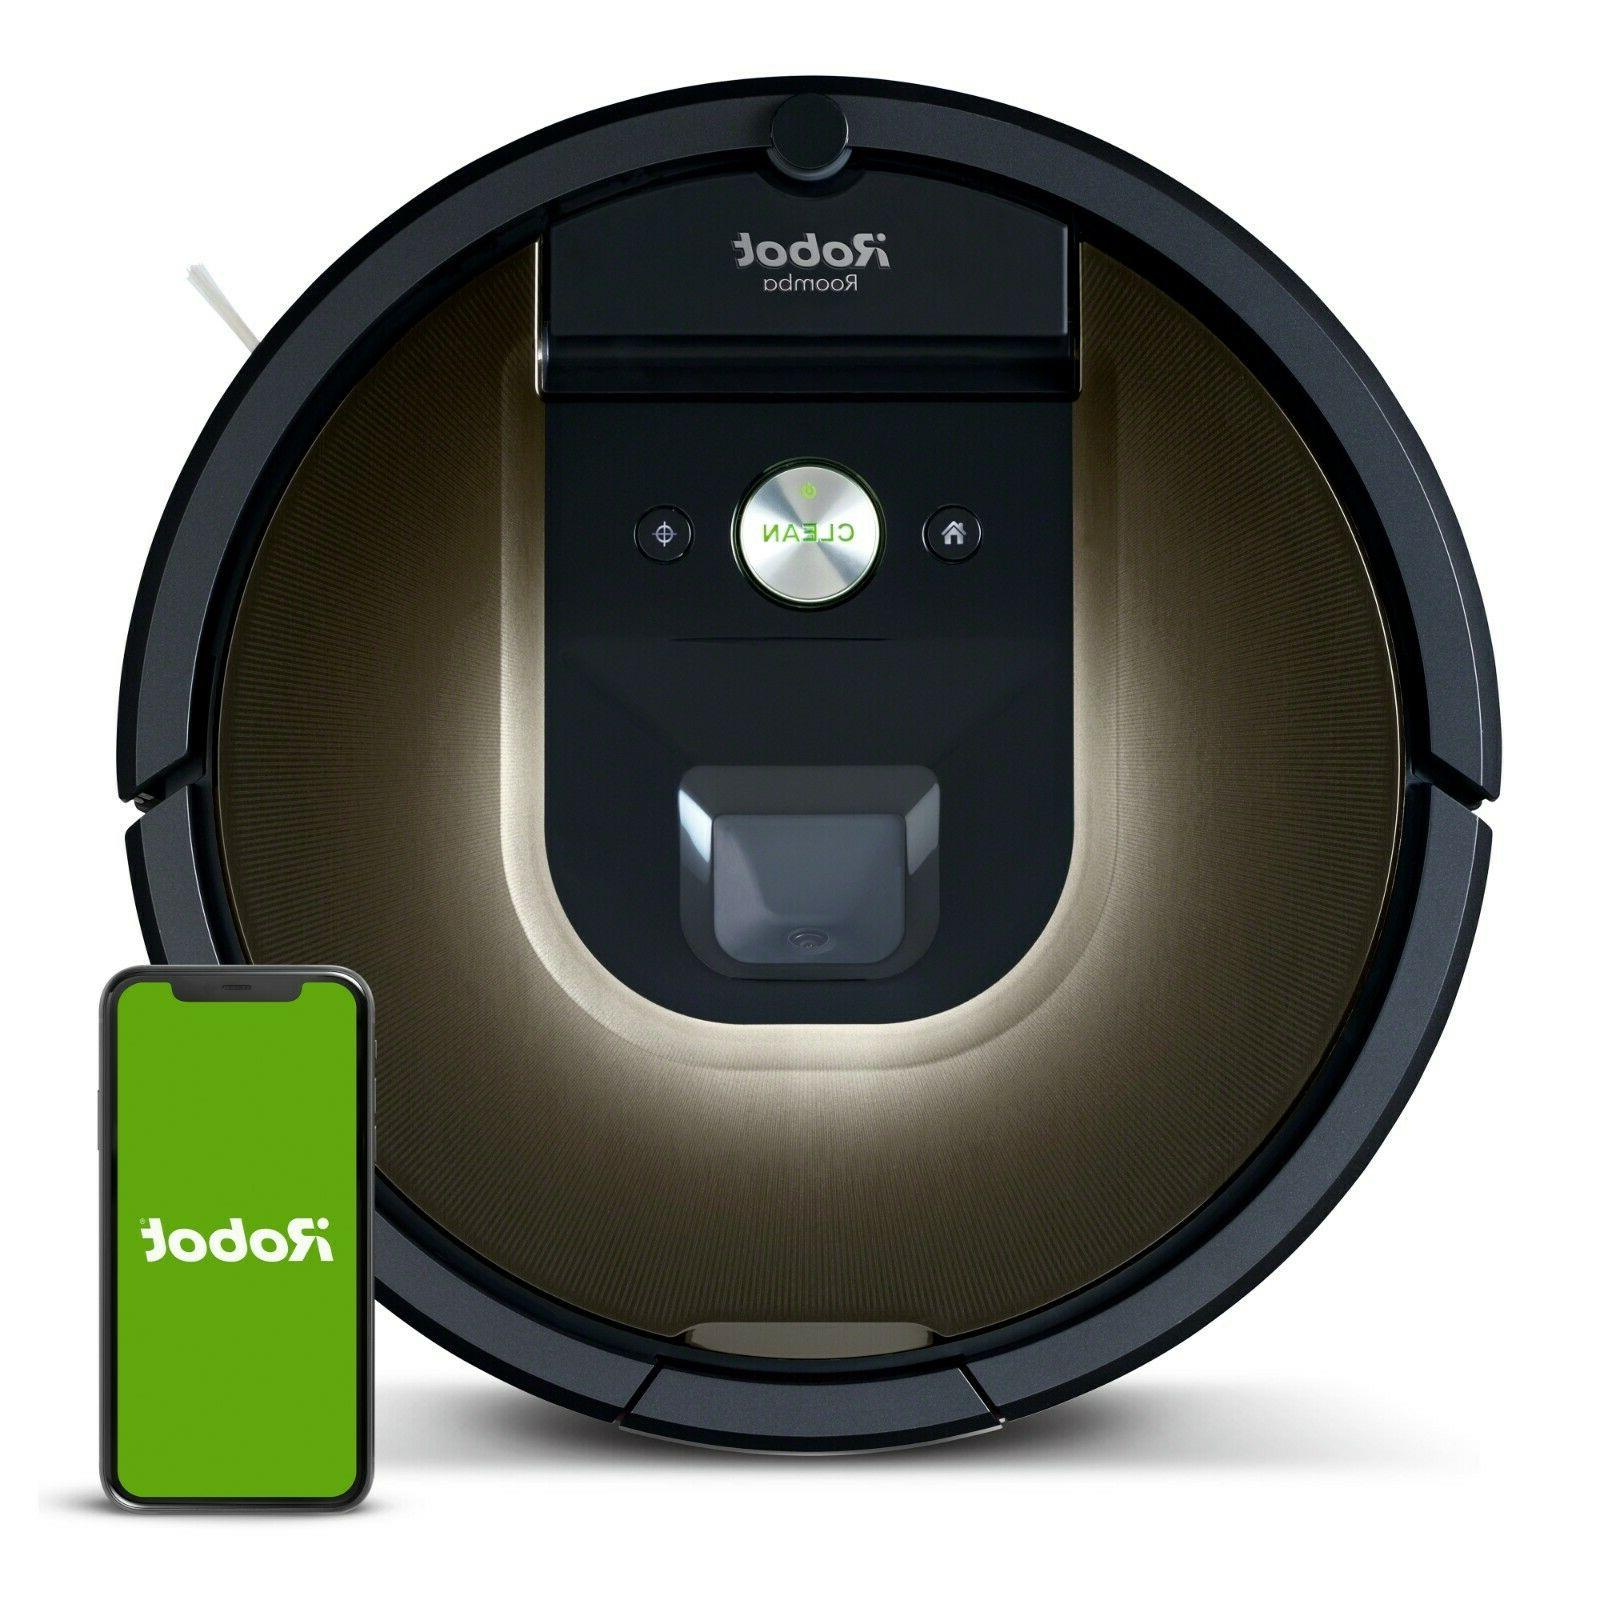 roomba 980 vacuum cleaning robot manufacturer certified